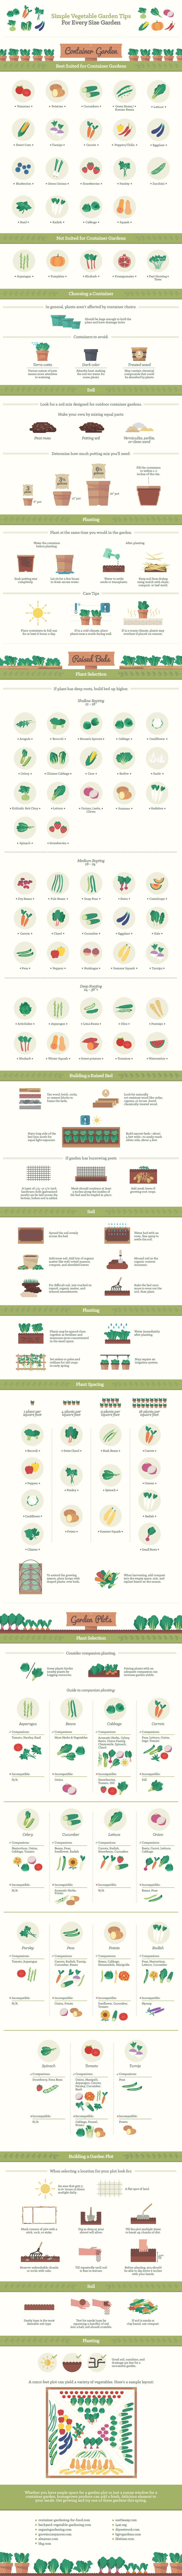 Simple Vegetable Garden Tips For Every Size Garden #infographic